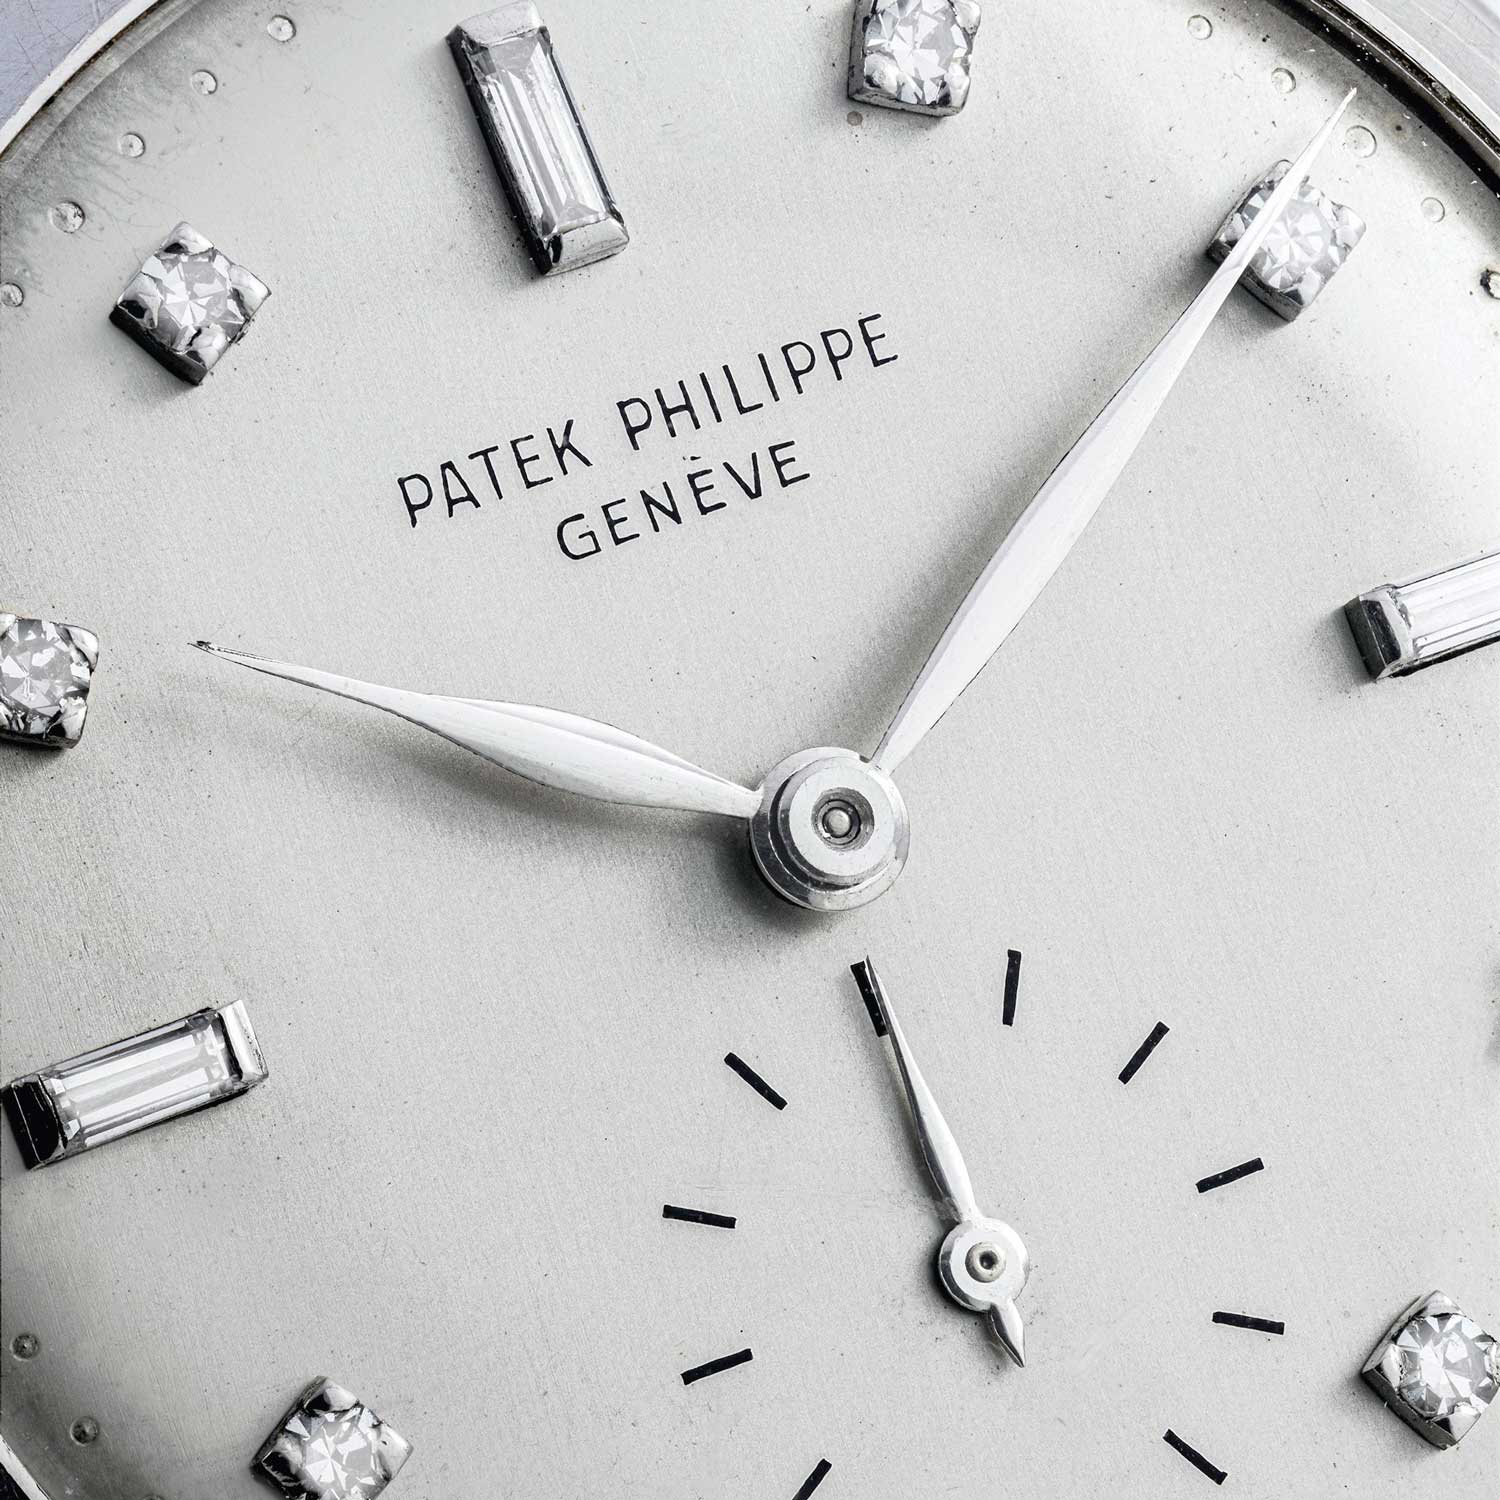 Lot 2481: Patek Philippe Platinum Calatrava with Diamond Hour Markers and 18k White Gold Bracelet, Ref. 2484, Confirmed by the extract from The Archives